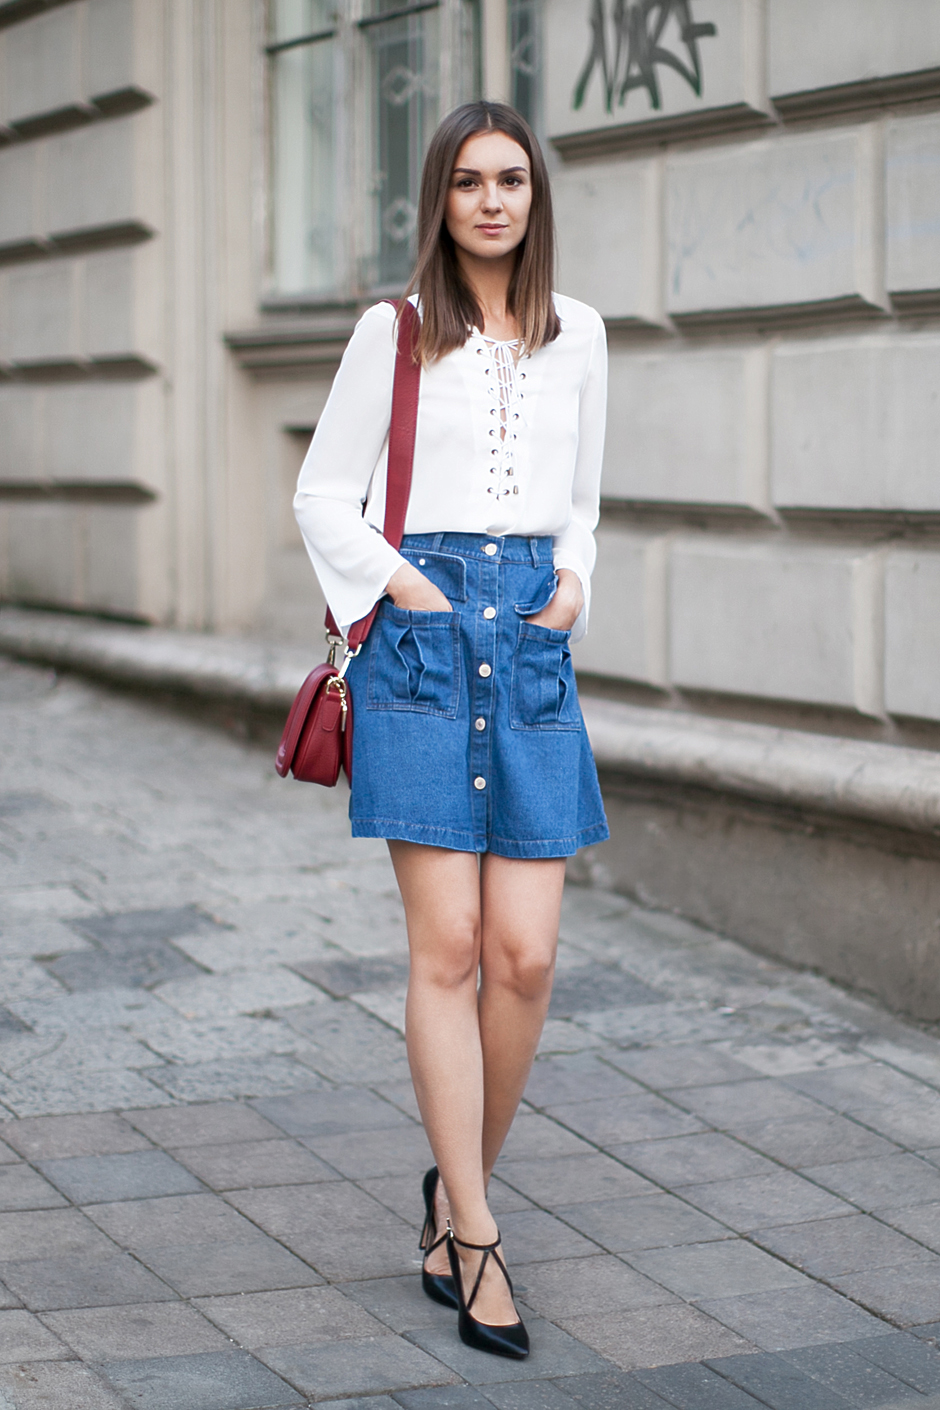 Denim skirt u2013 Fashion Agony | Daily outfits fashion trends and inspiration | Fashion blog by ...